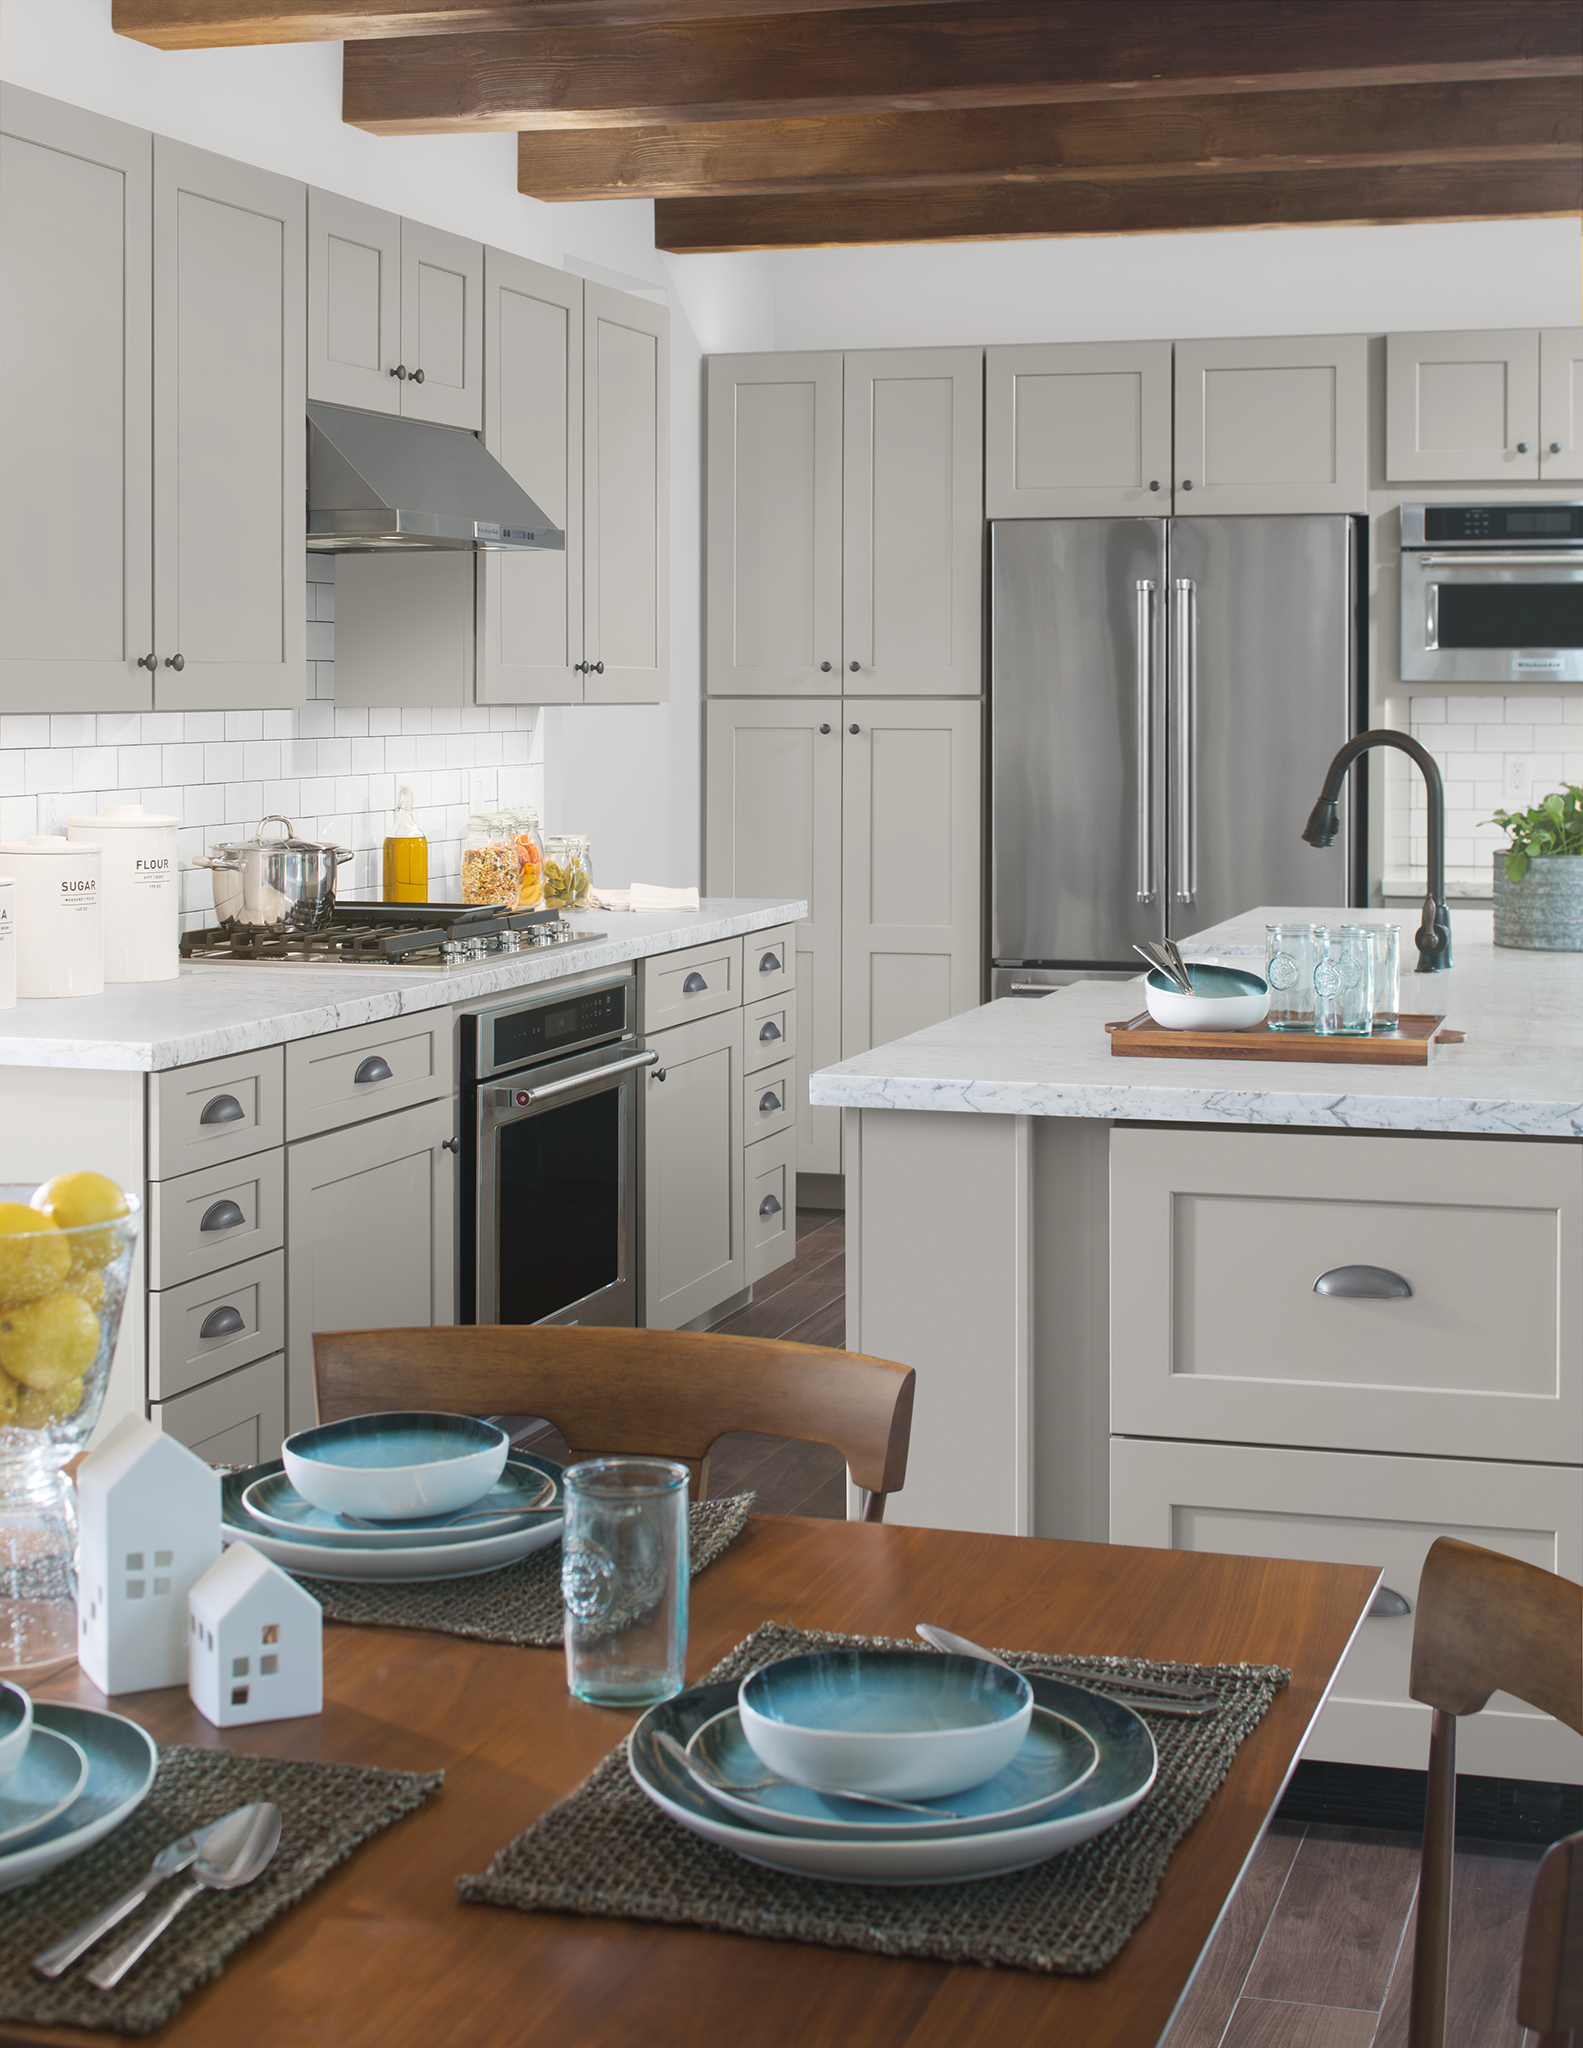 New Haven Painted Stone Cabinetry From 84 Design Studios Kitchen Cabinet Inspiration Kitchen Kitchen Cabinets